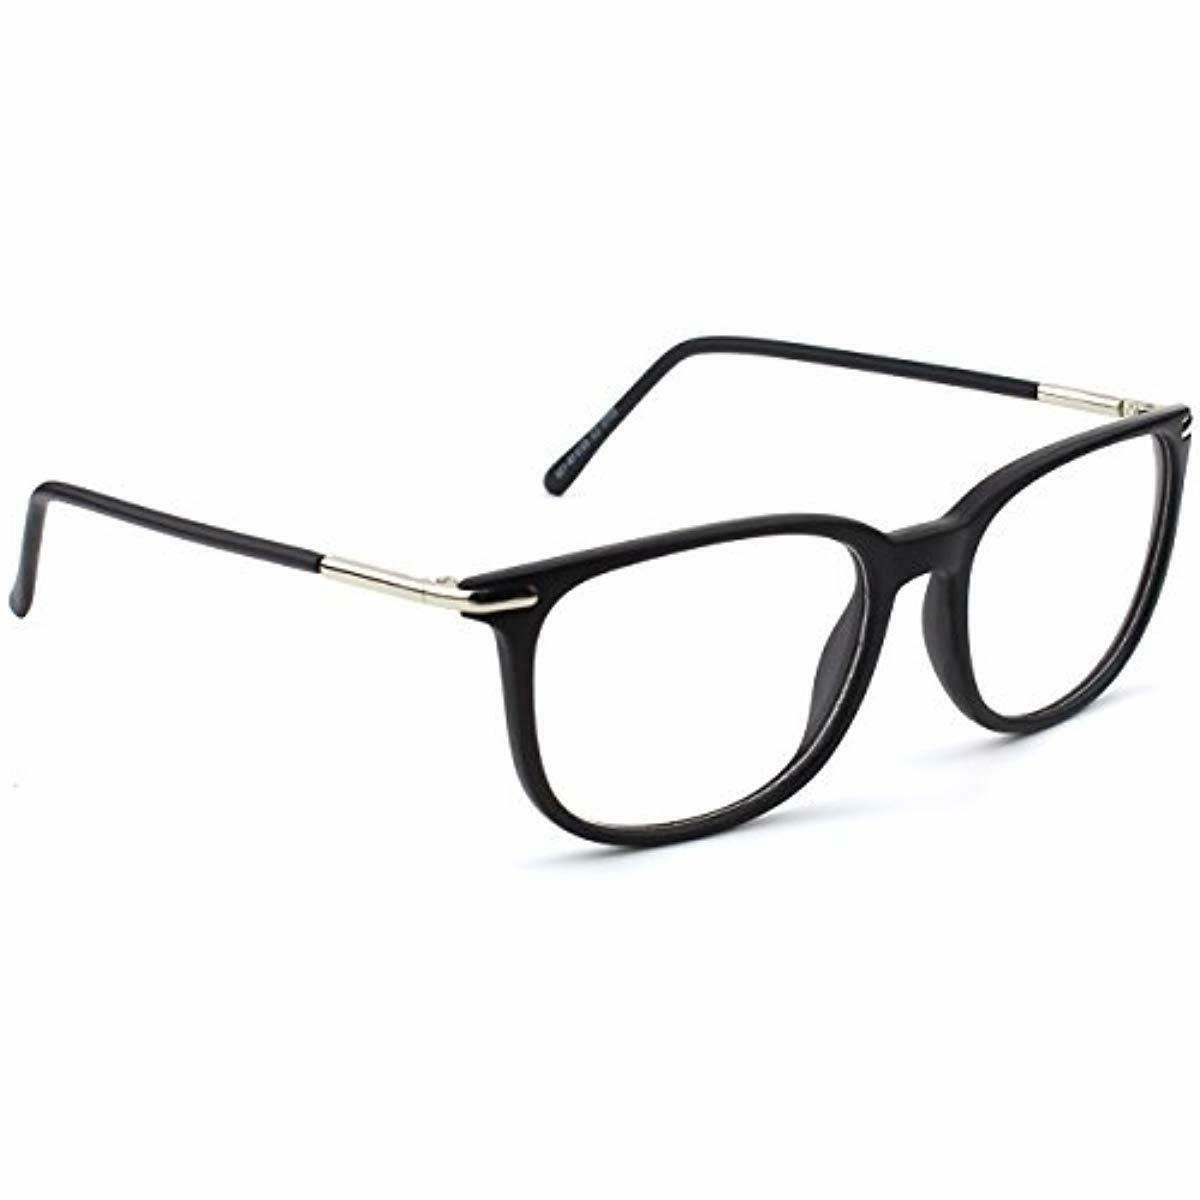 Happy Store CN79 High Fashion Metal Temple Horn Rimmed Clear Glasses